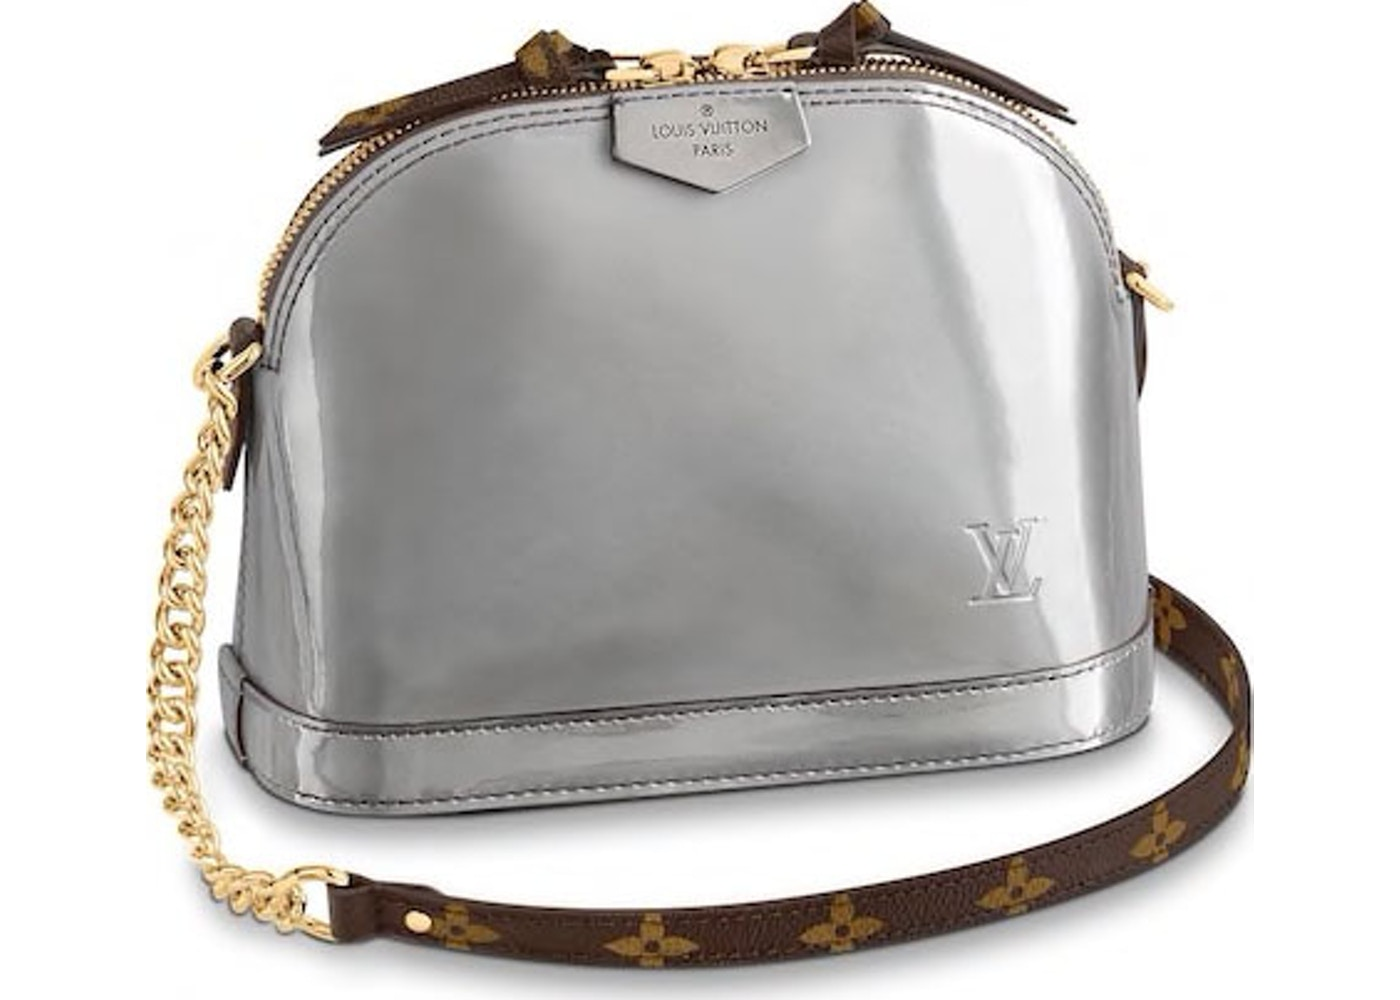 763cb3a55e Louis Vuitton Alma Monogram Vernis Miroir Mini Gris Metal. Monogram Vernis  Miroir Mini Gris Metal